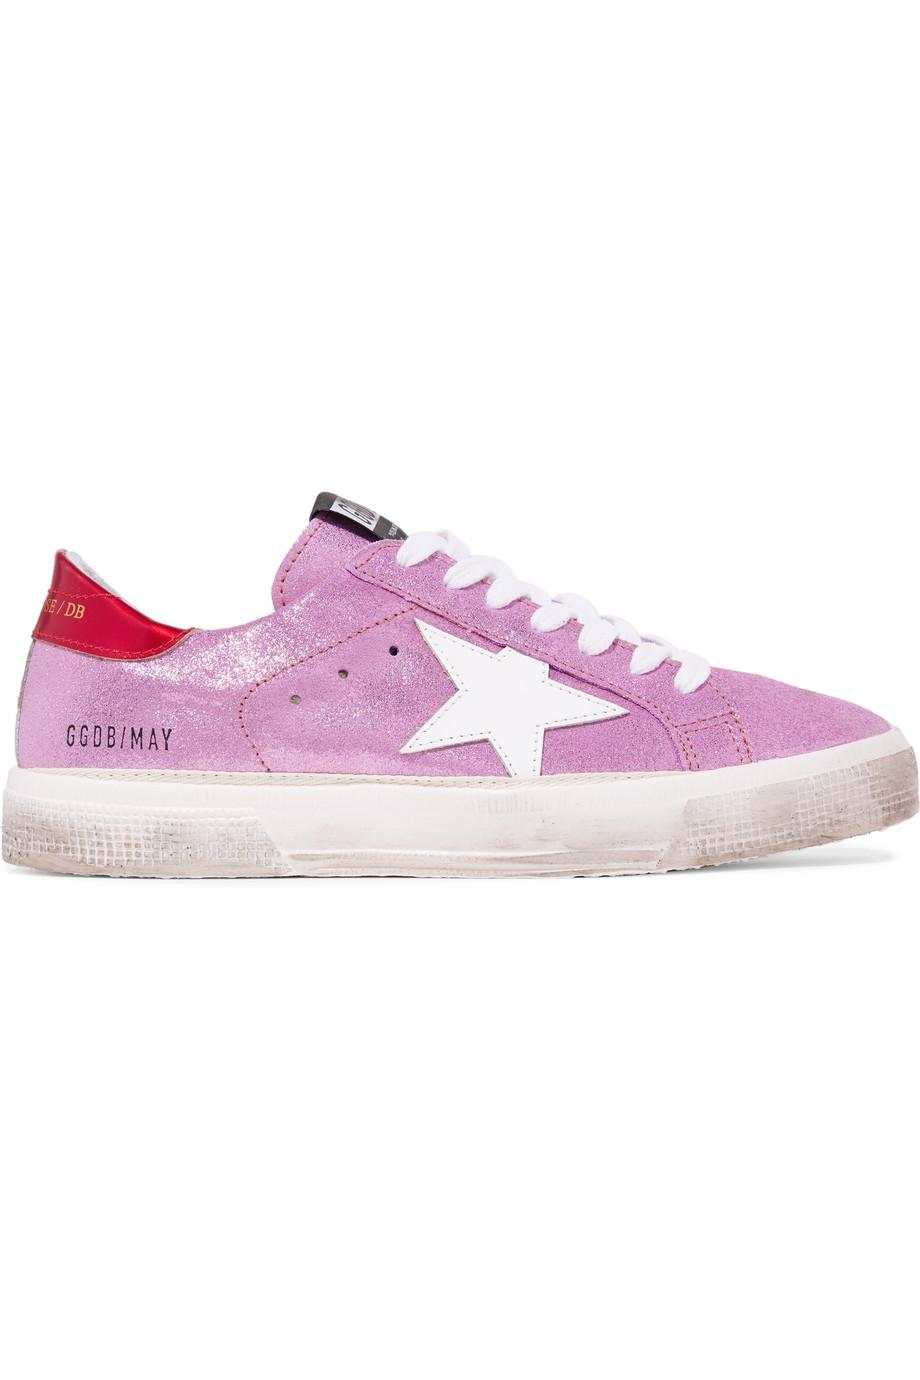 May Distressed Metallic Suede And Leather Sneakers - Lilac Golden Goose